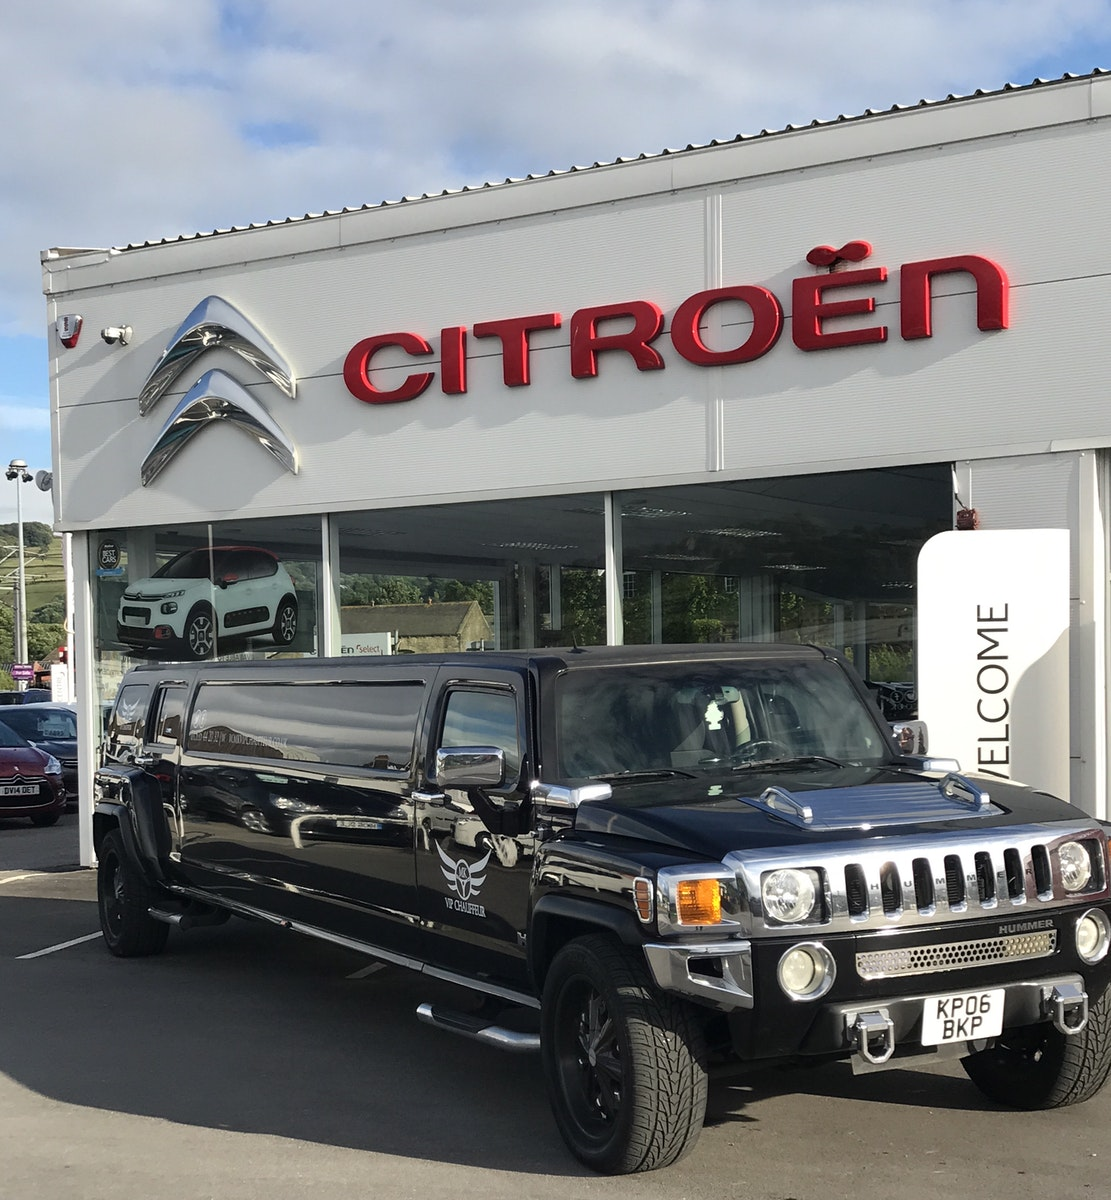 2006 Hummer H3 8 seater Limousine For Sale (picture 3 of 8)